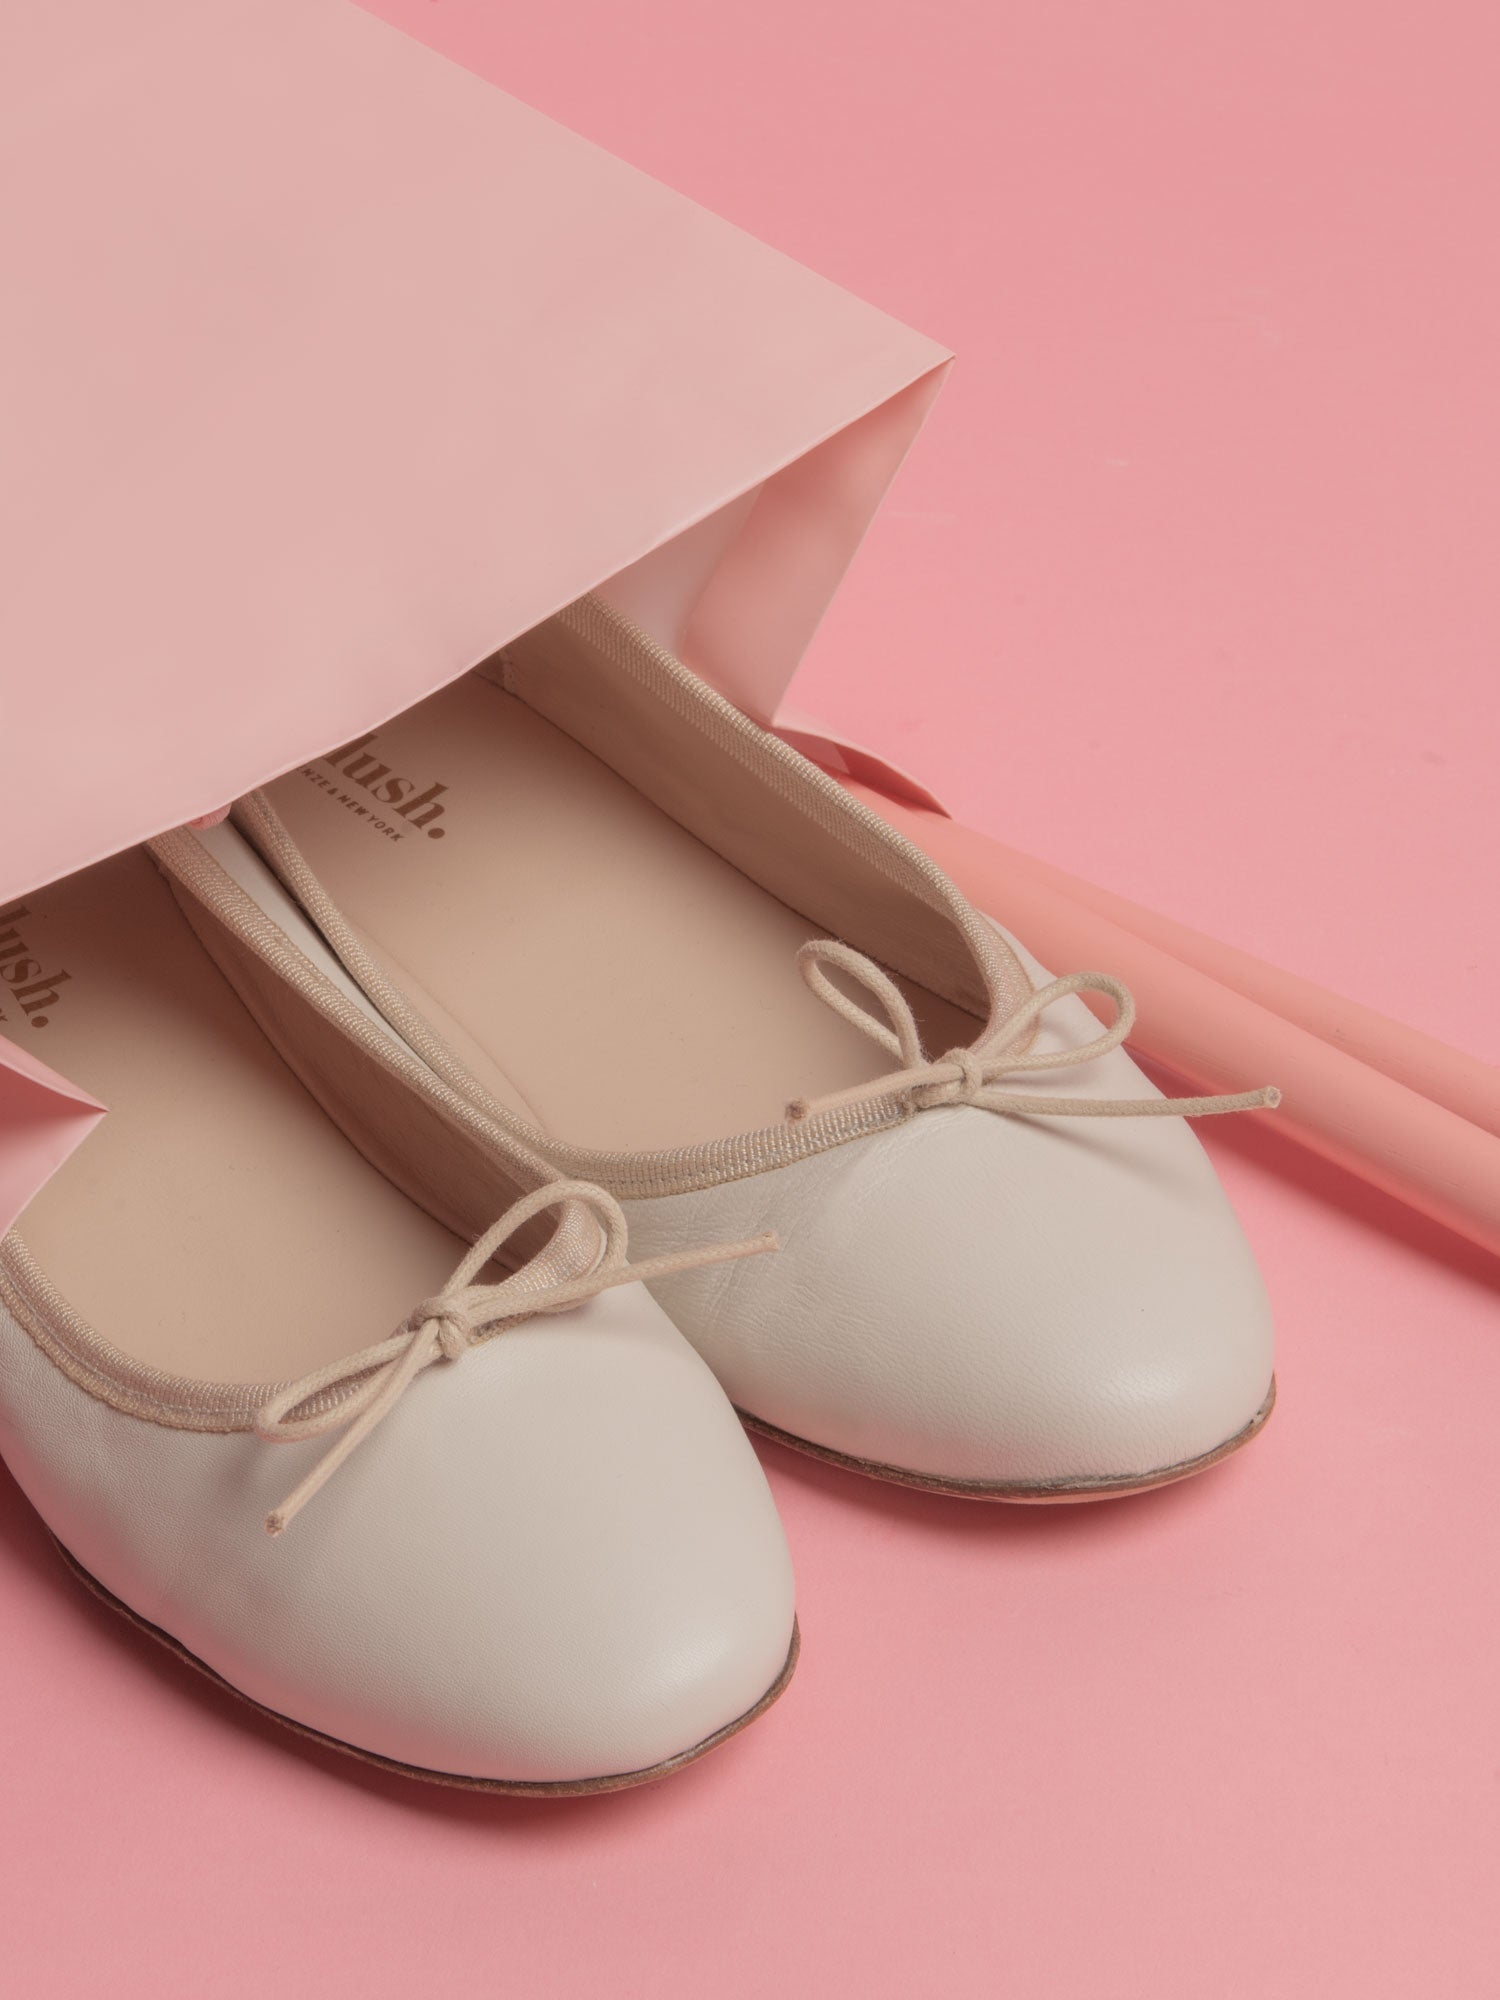 Minetta_BALLERINAS (CREAM)